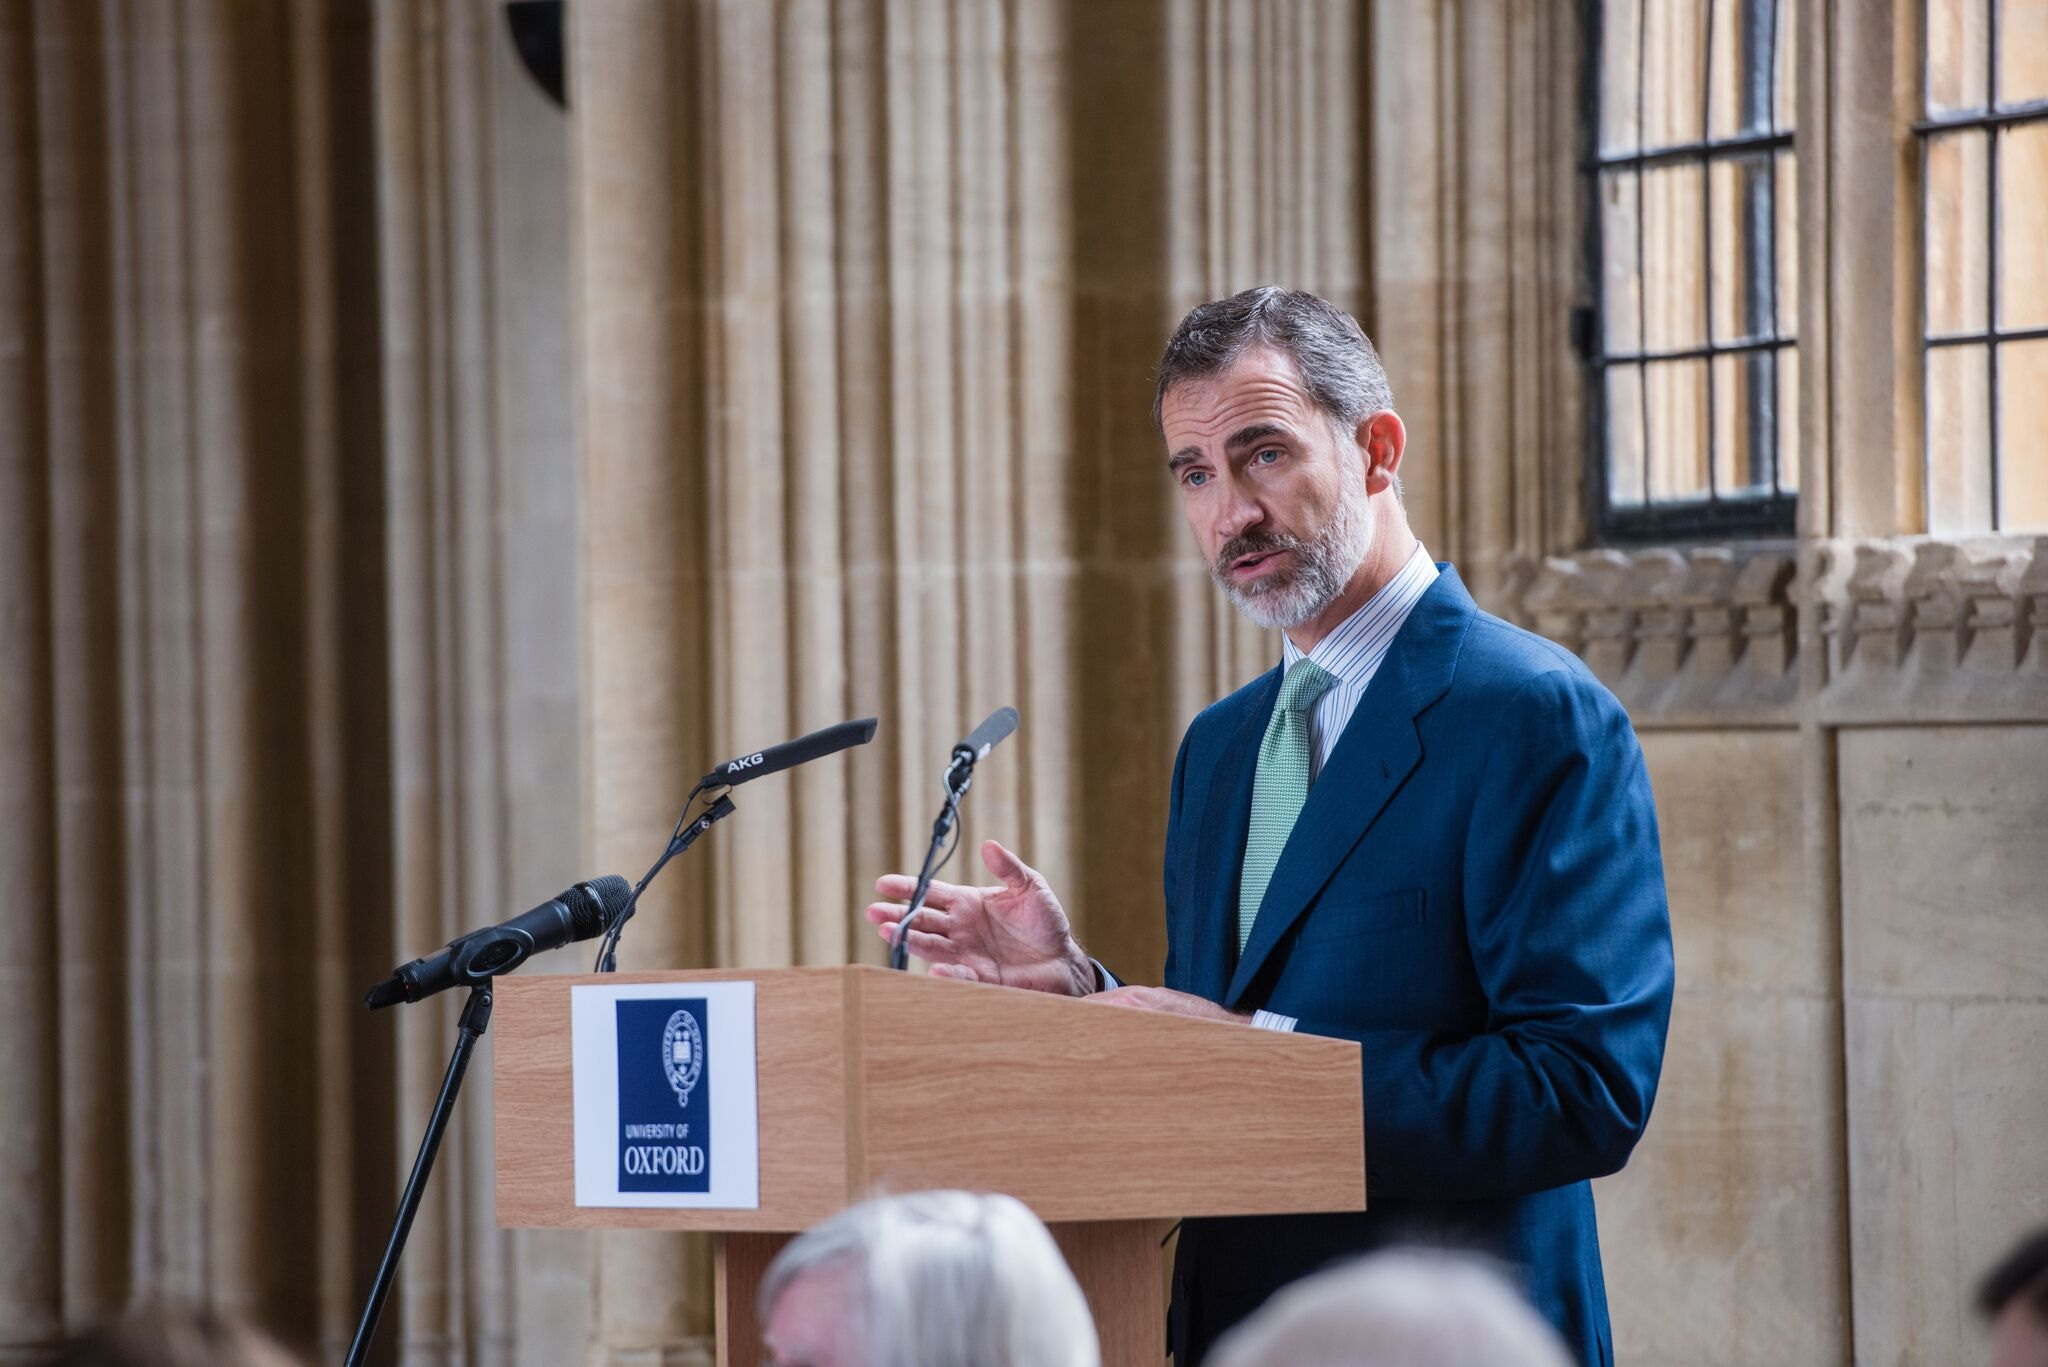 King and Queen of Spain visit Oxford